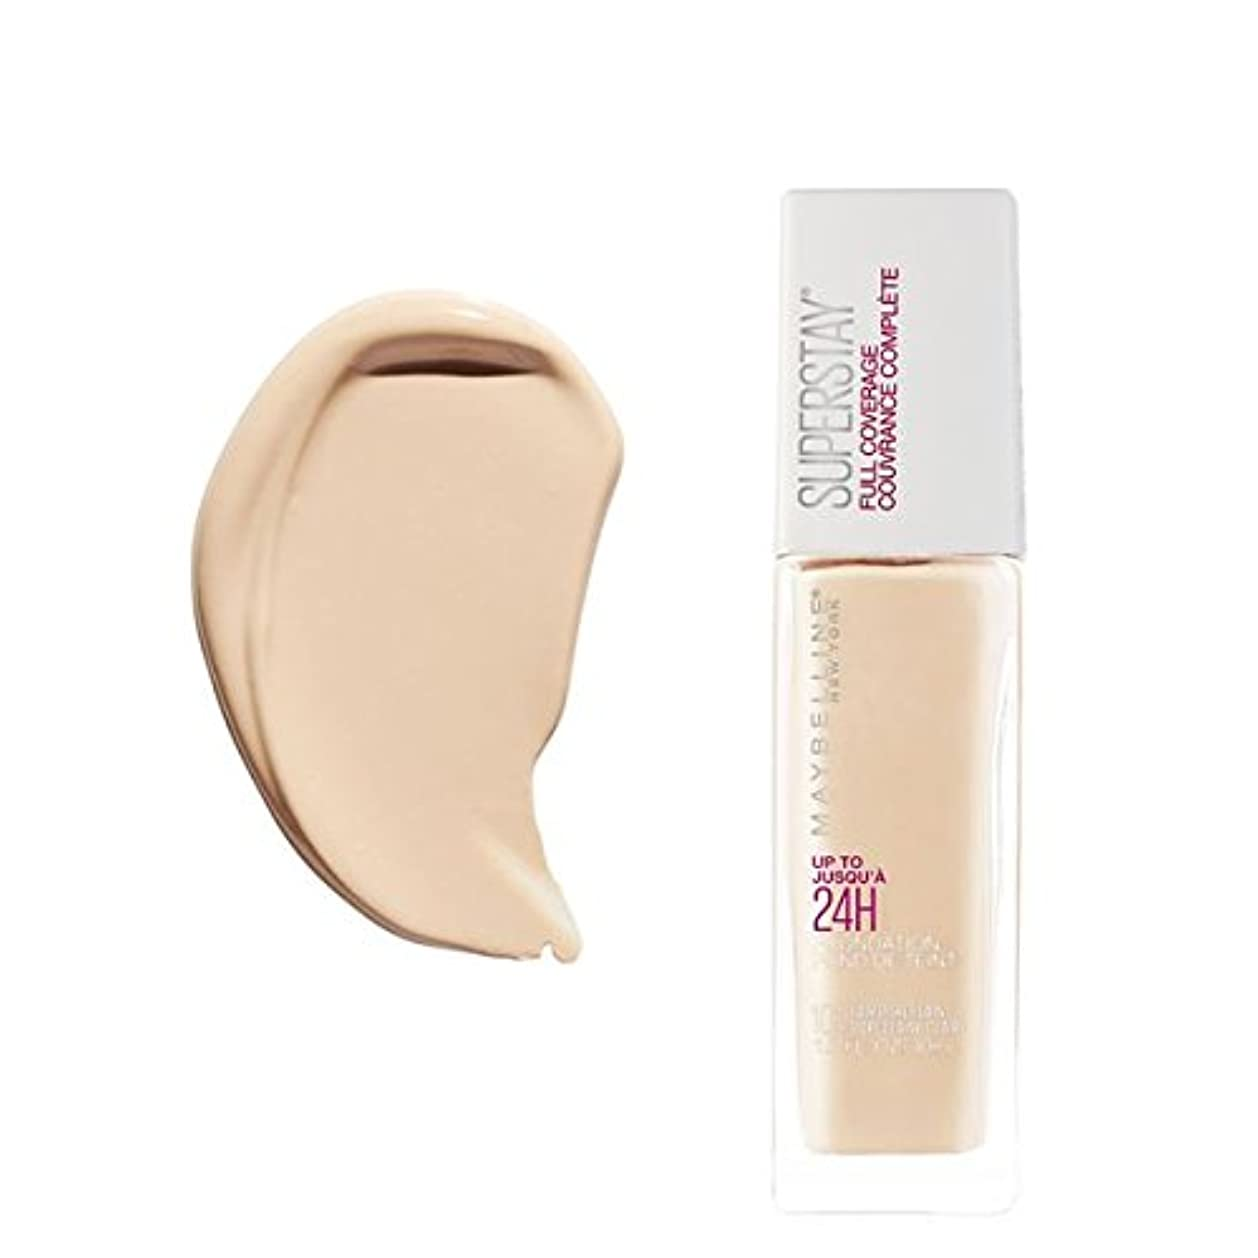 アスリート強打慣れている(6 Pack) MAYBELLINE Superstay Full Coverage Foundation - Fair Porcelain 102 (並行輸入品)